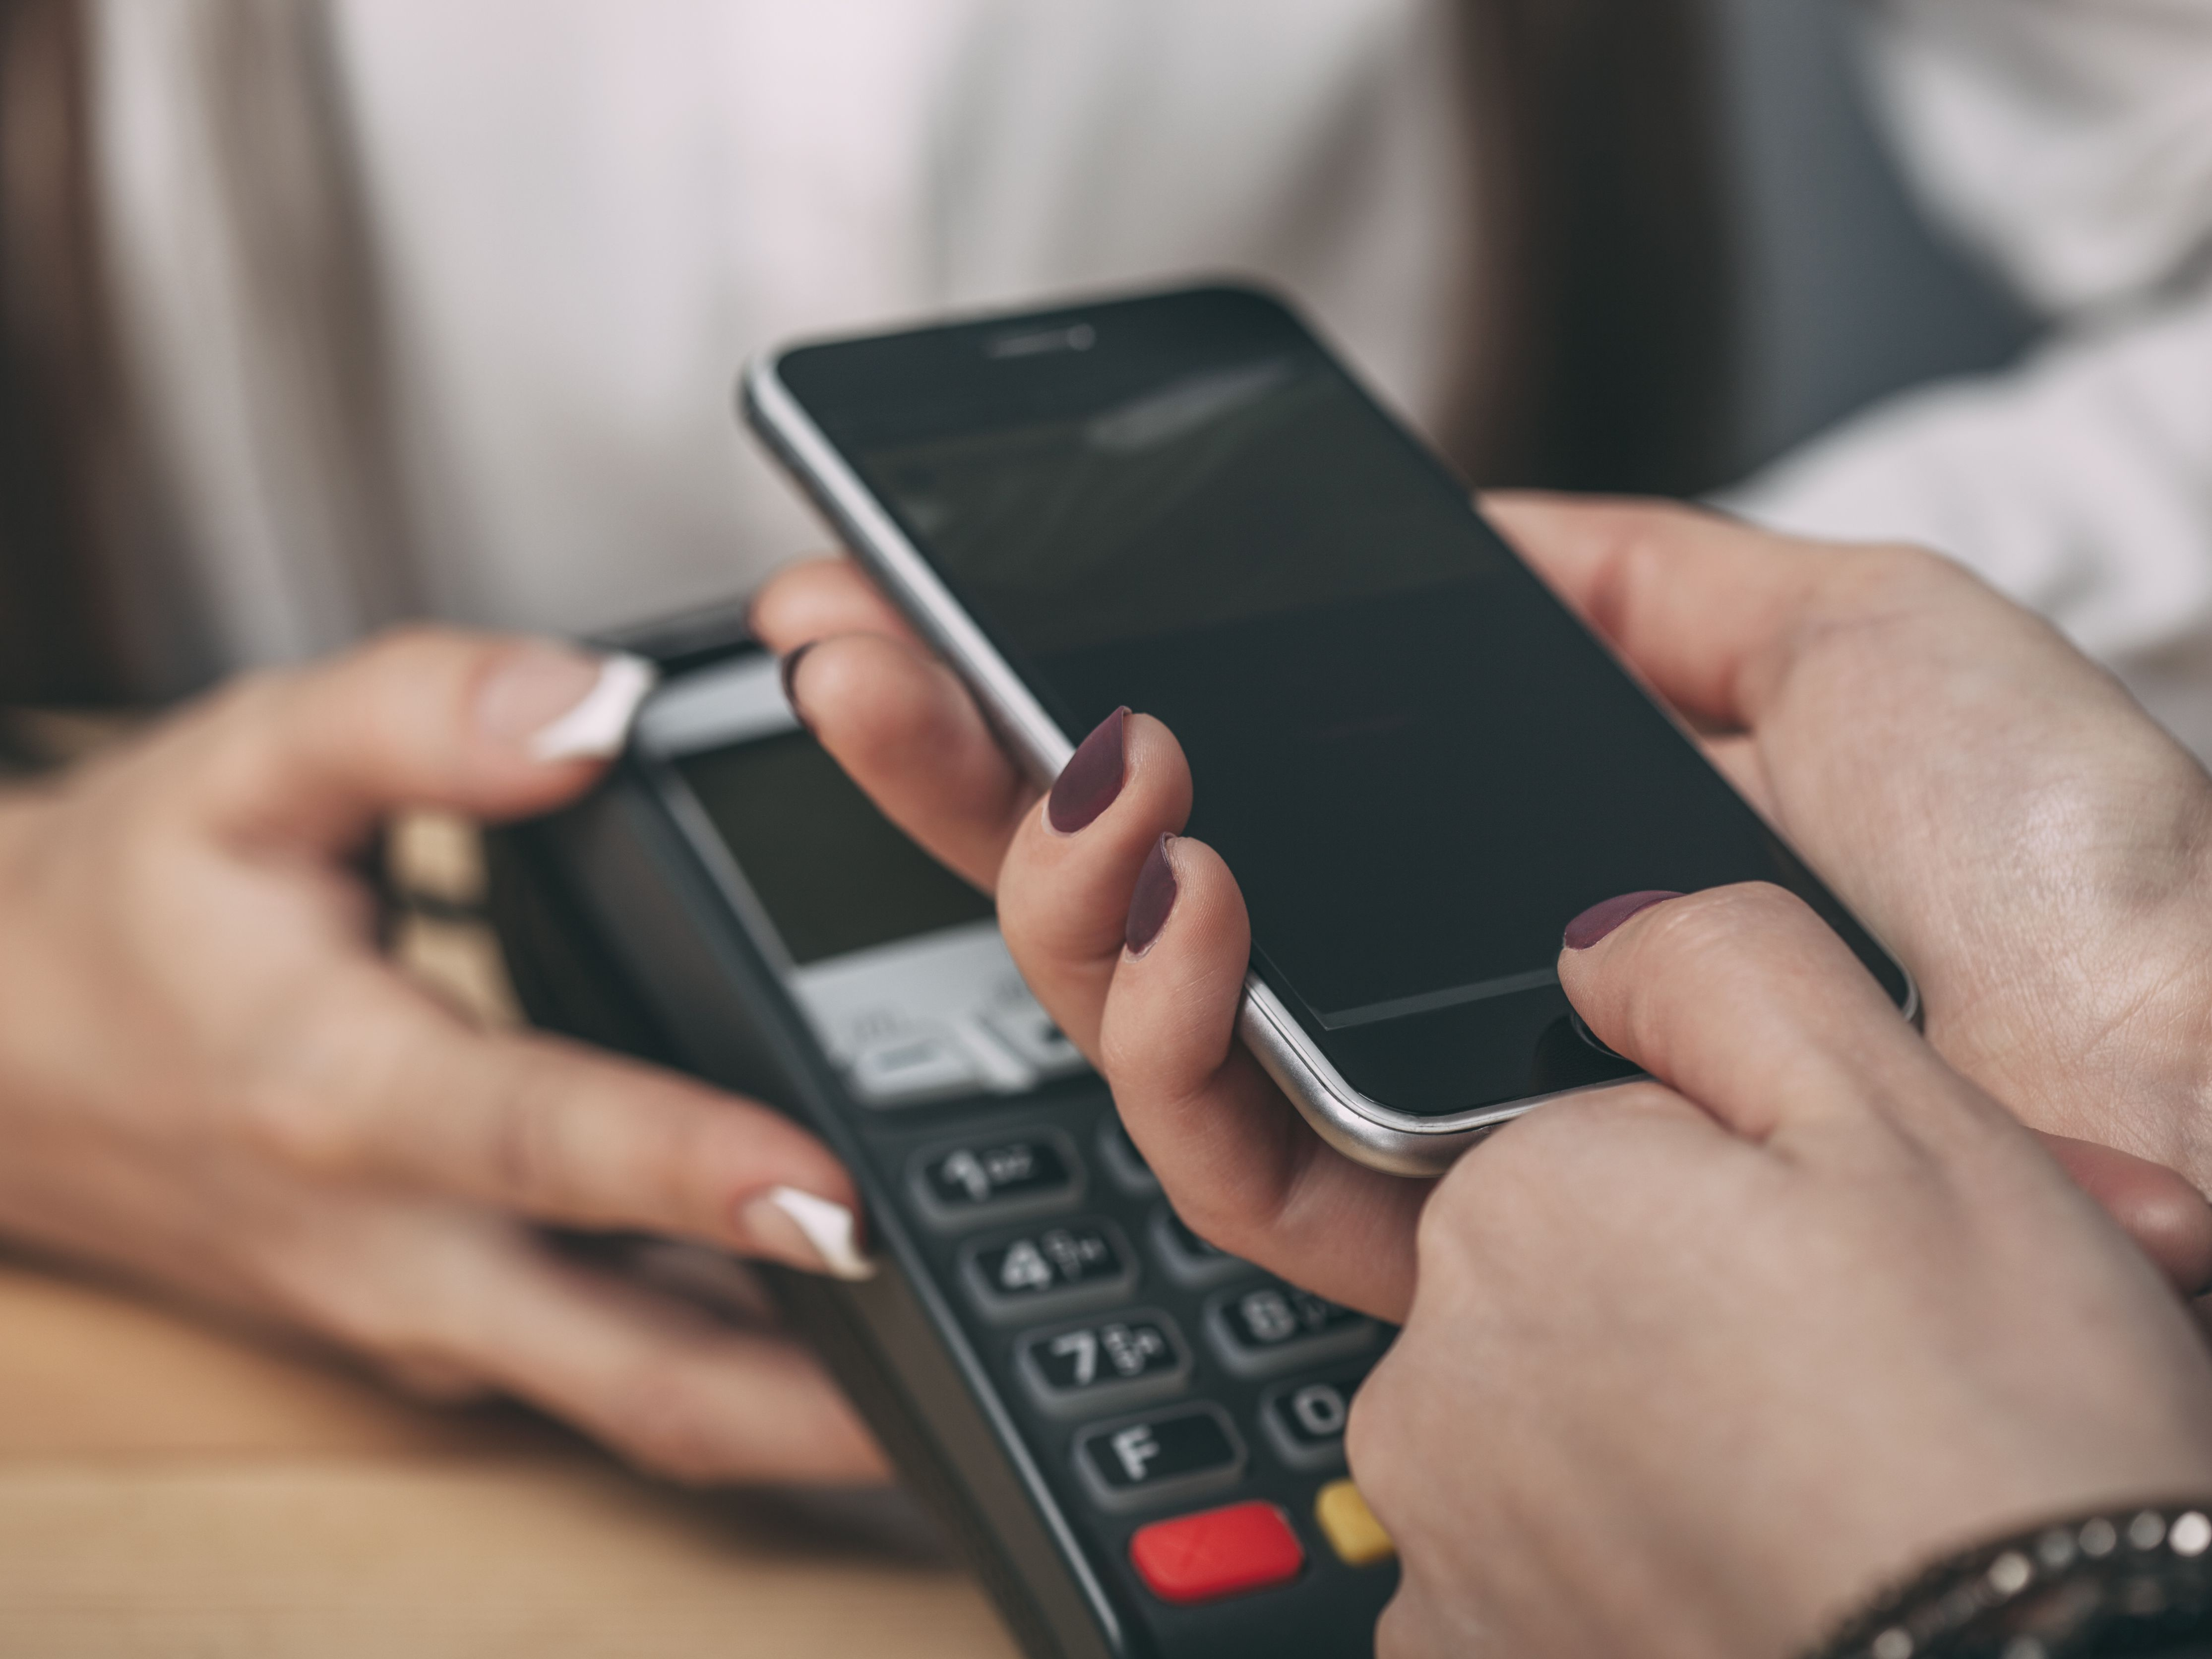 7 Tips for Making Safe Mobile Payments